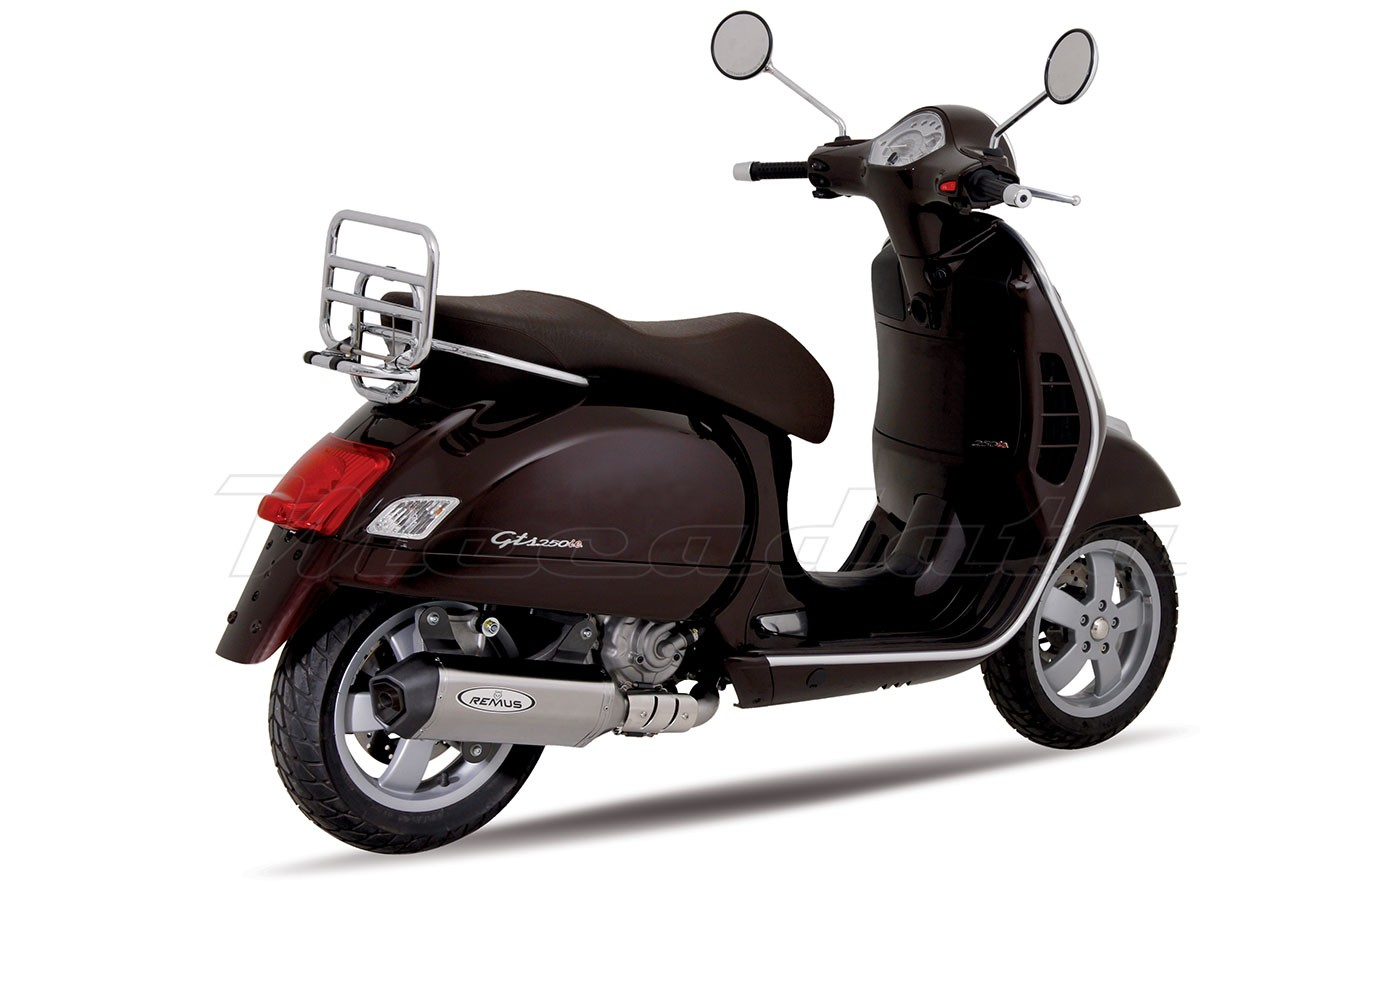 echappement remus inox piaggio vespa gts 250 i e 05. Black Bedroom Furniture Sets. Home Design Ideas